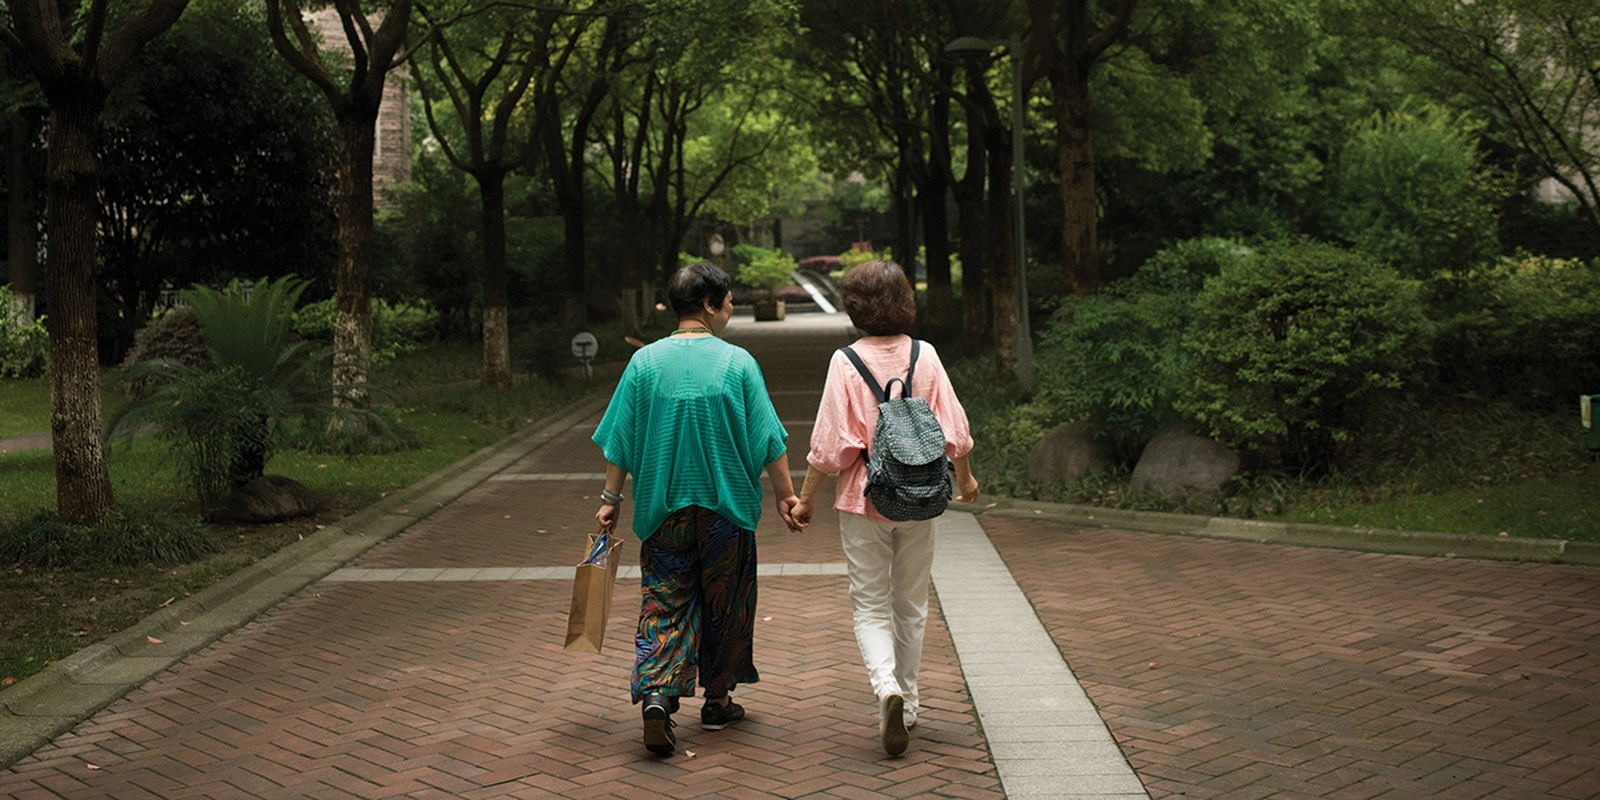 Women walking in the park holding hands